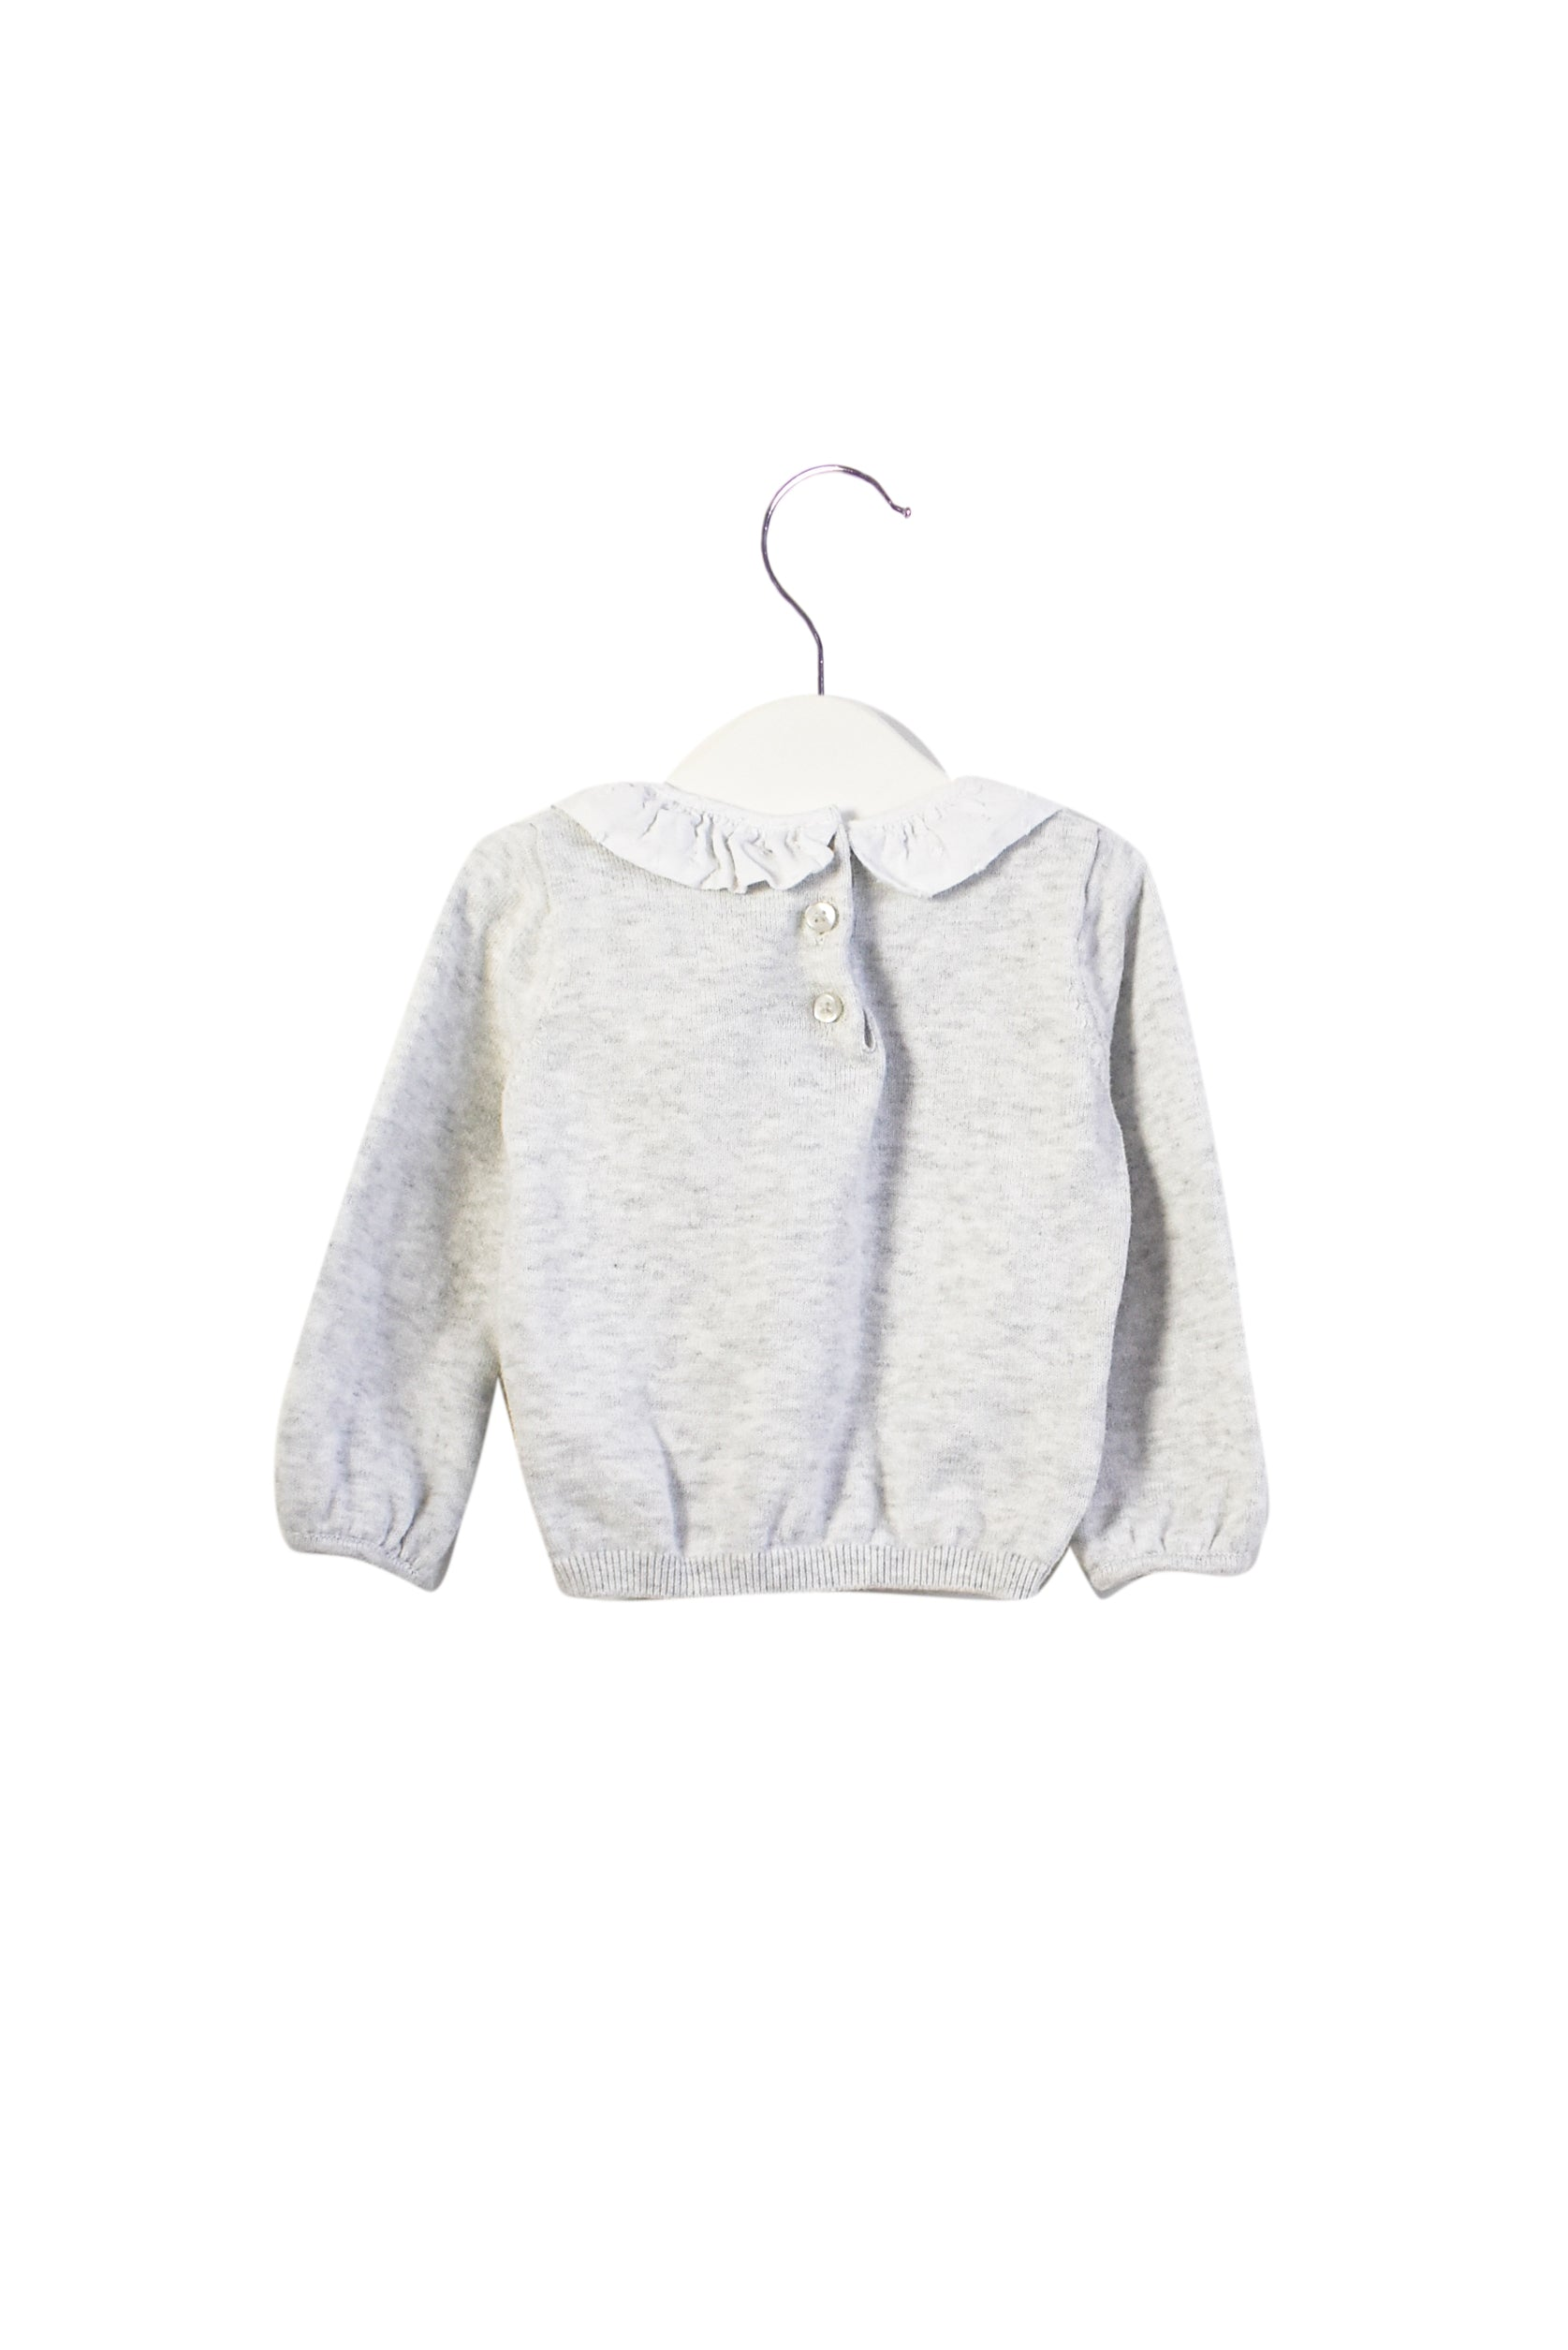 10013342 The Little White Company Baby ~ Sweater 3-6M at Retykle